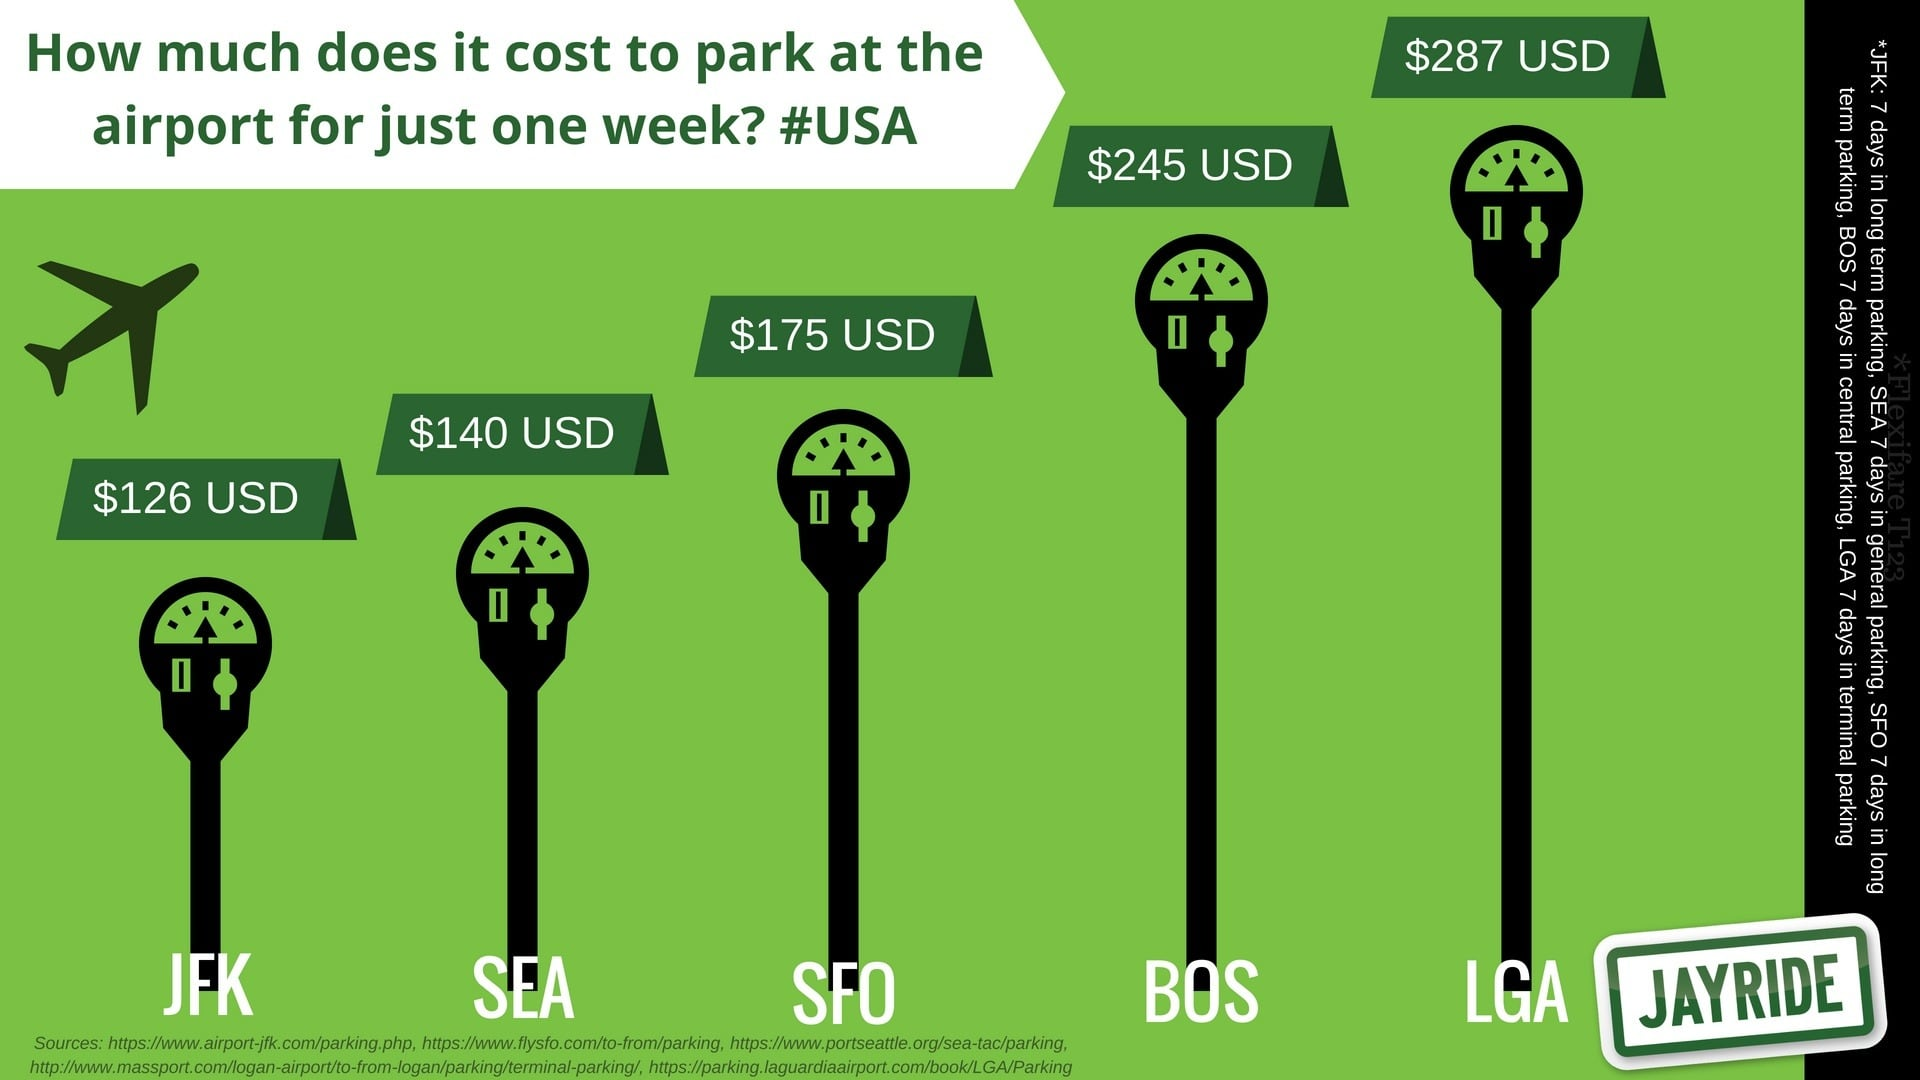 USA cost of parking